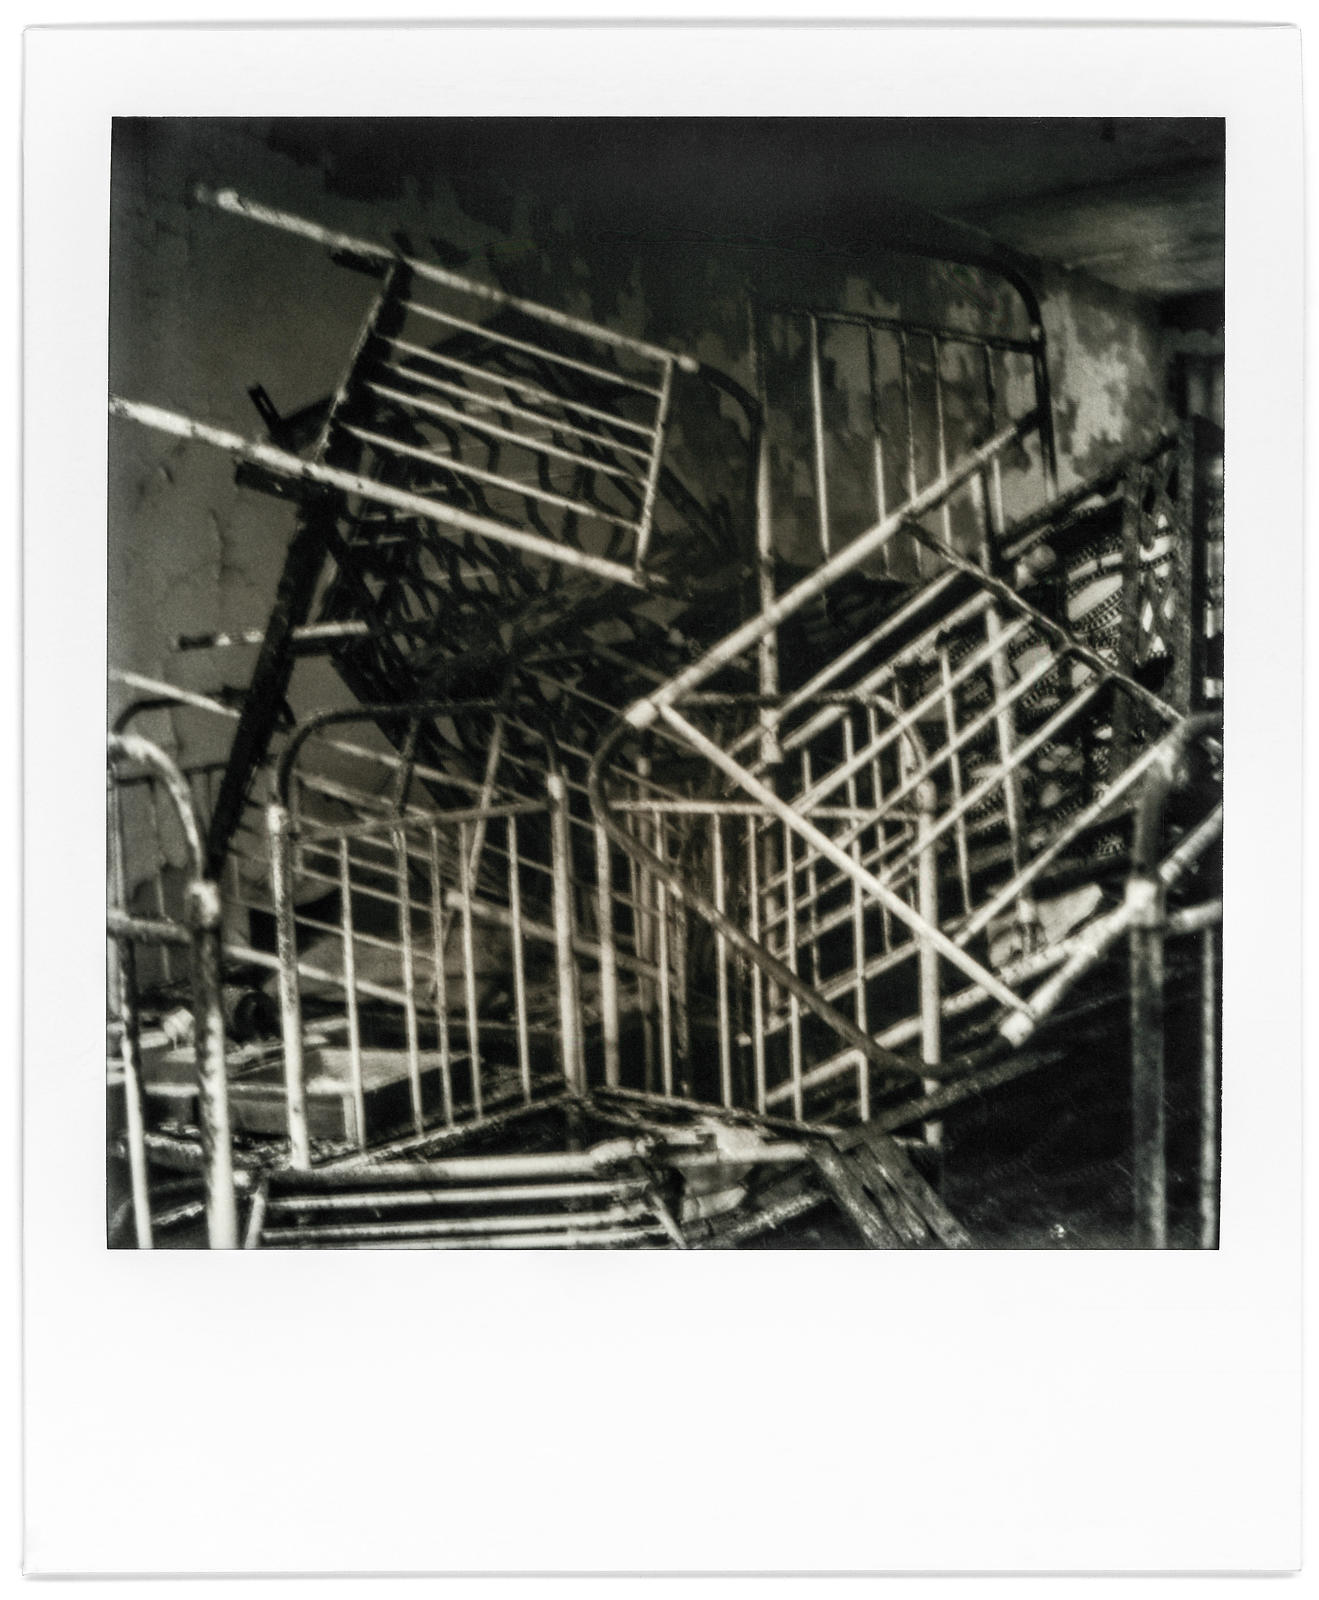 photo-polaroid-tchernobyl-chernobyl-11